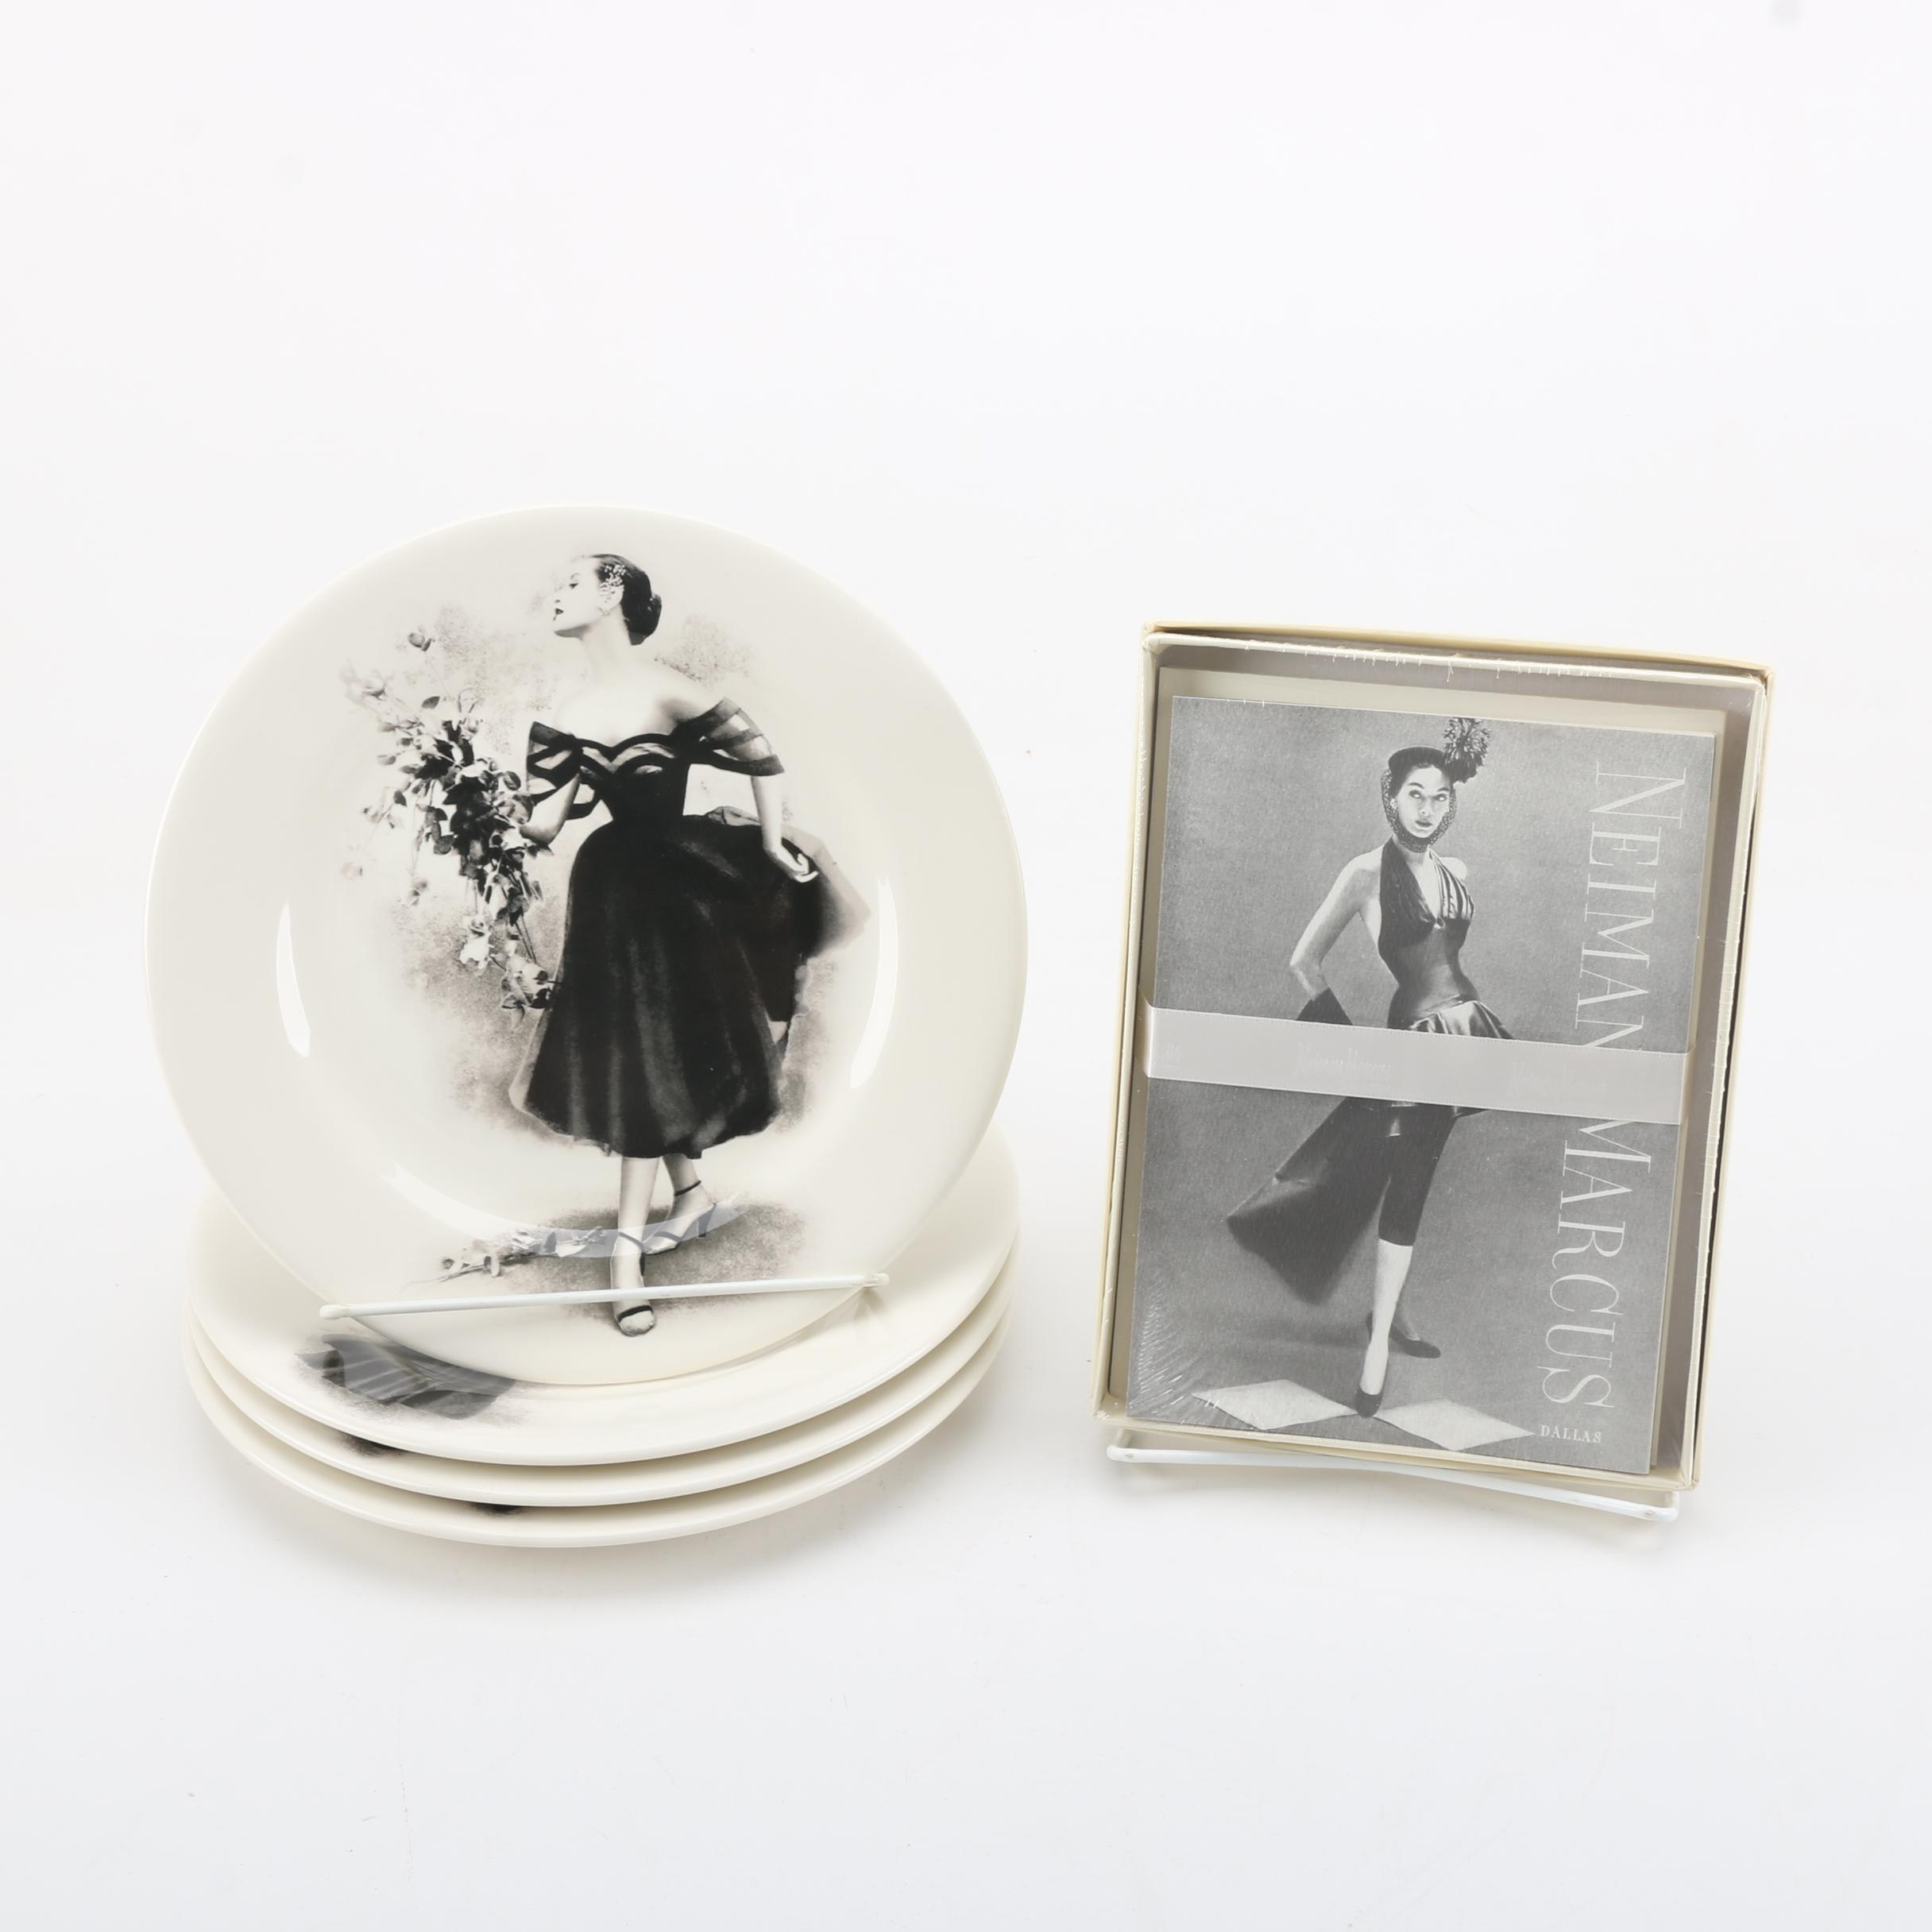 Neiman Marcus Ceramic Plates and Boxed Cards